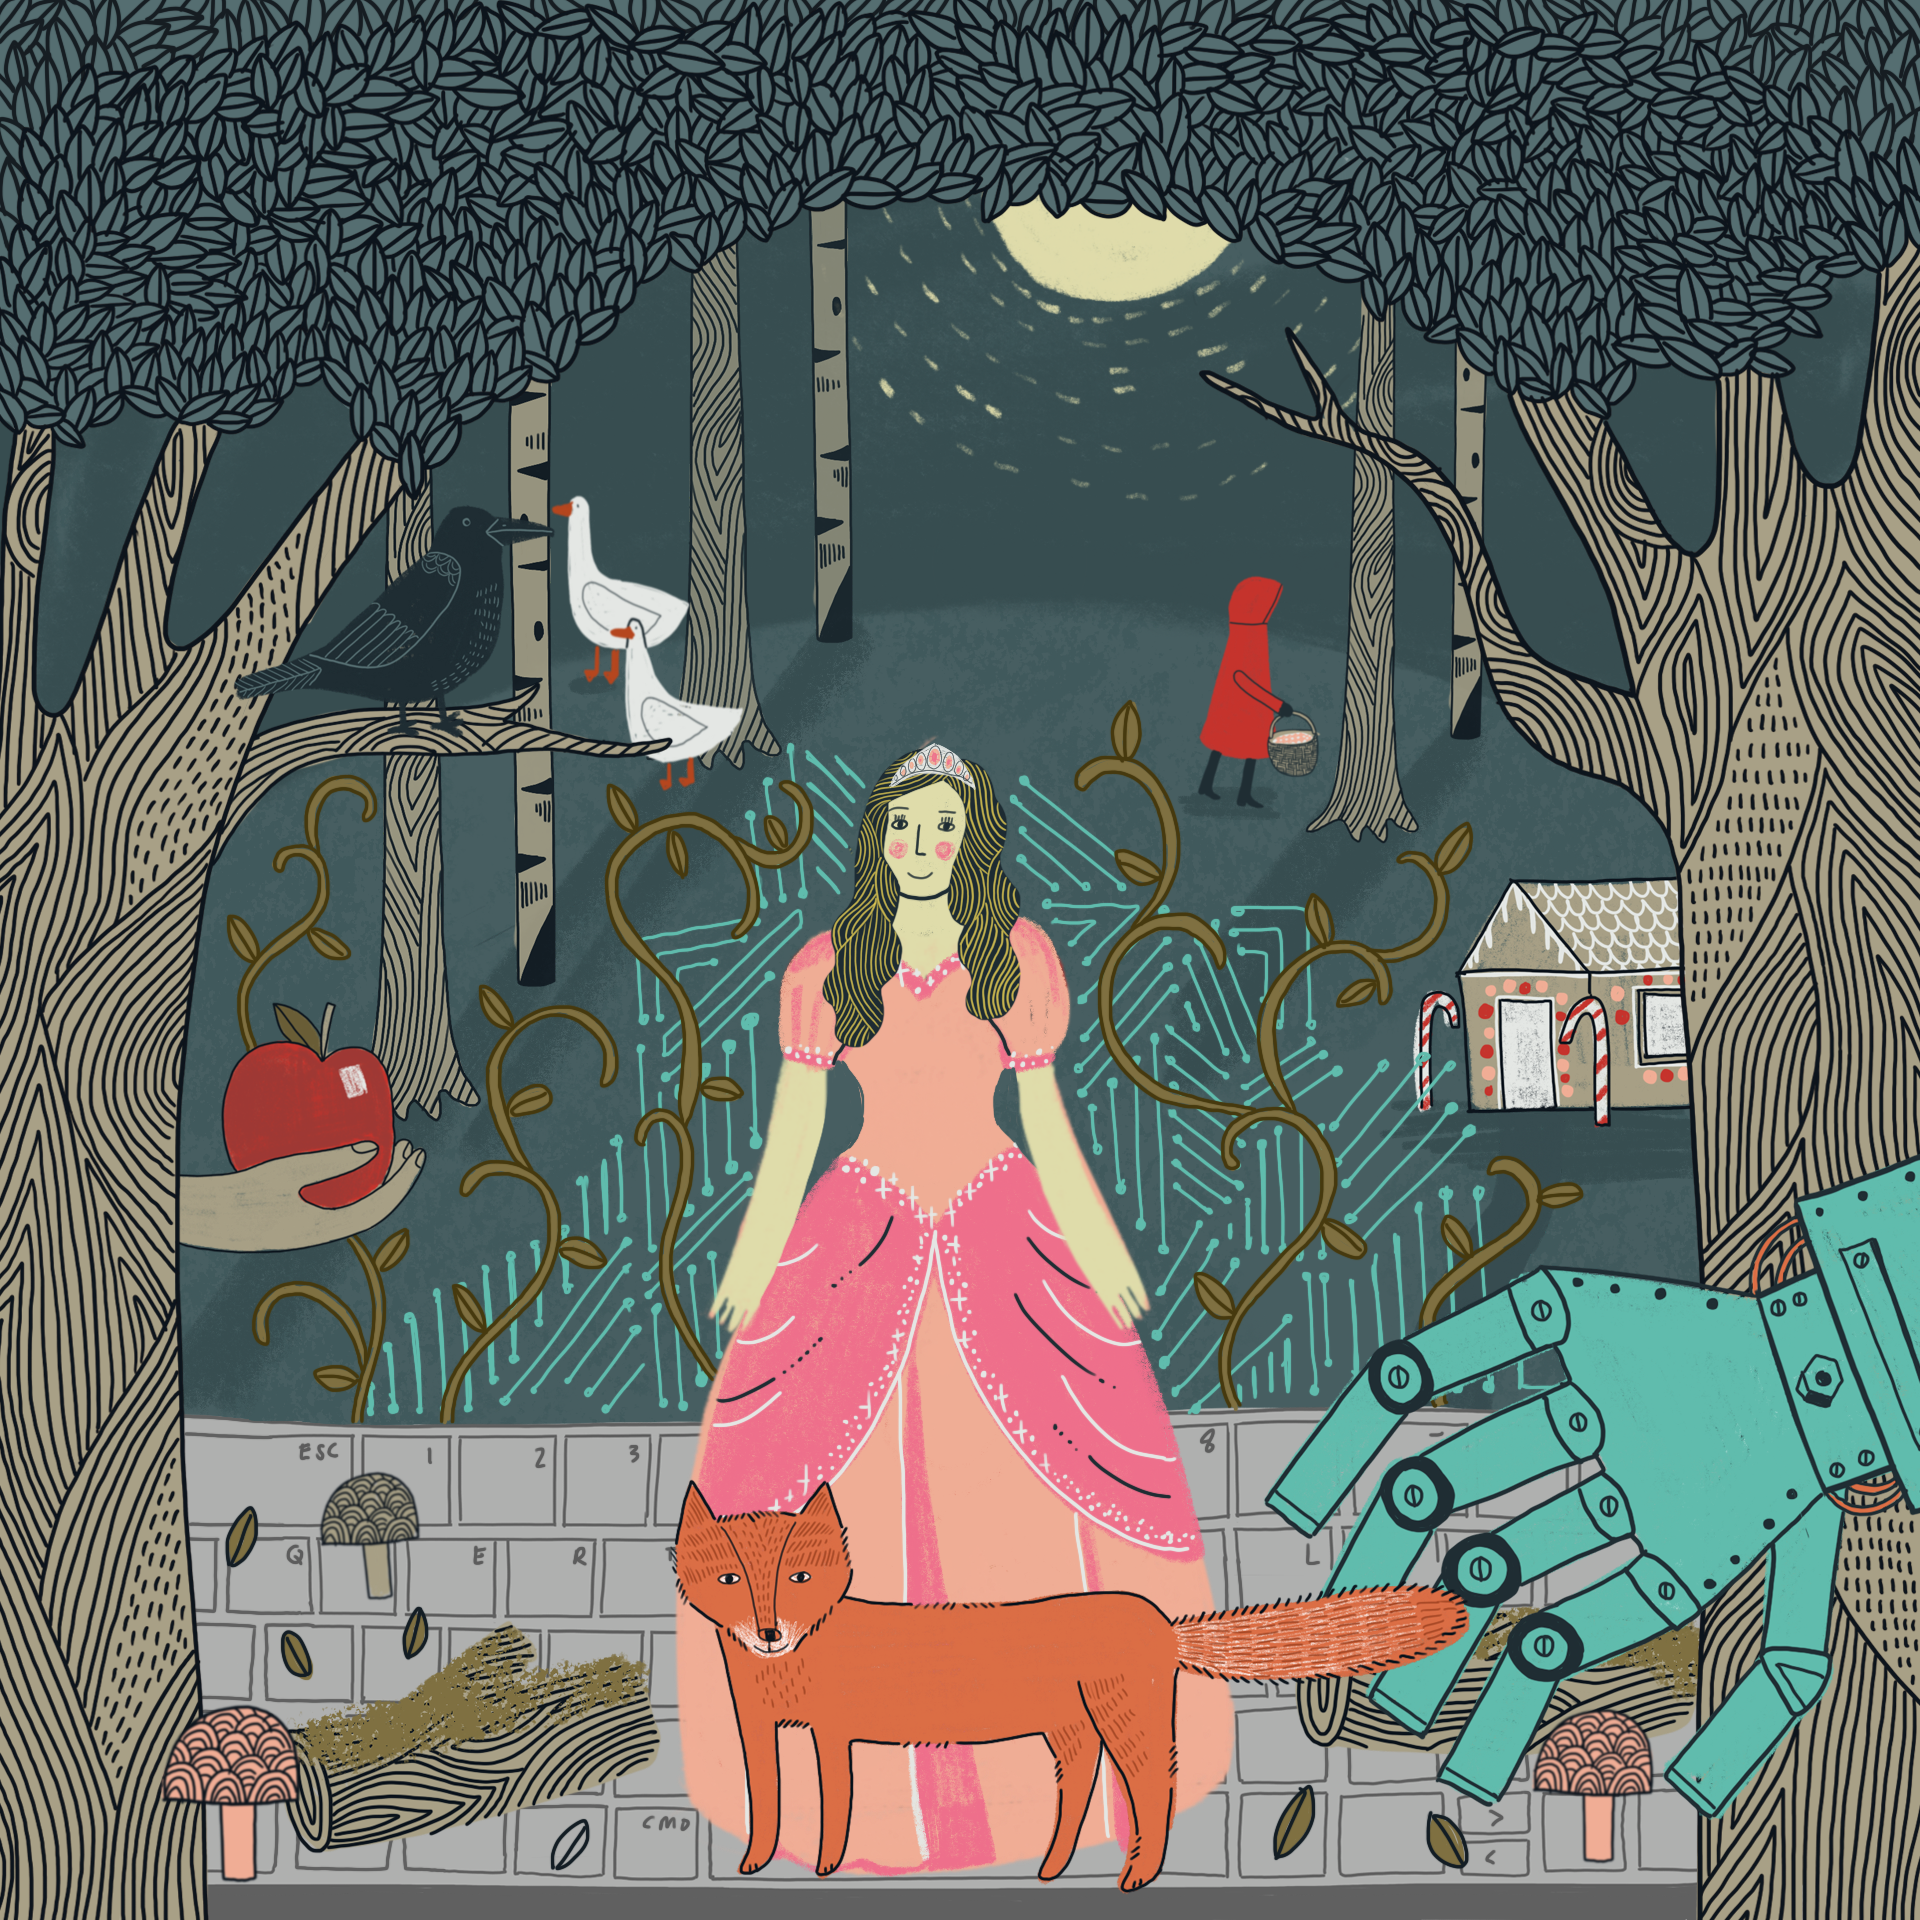 Lost' Grimm fairy tale is first AI bedtime story — Calm Blog